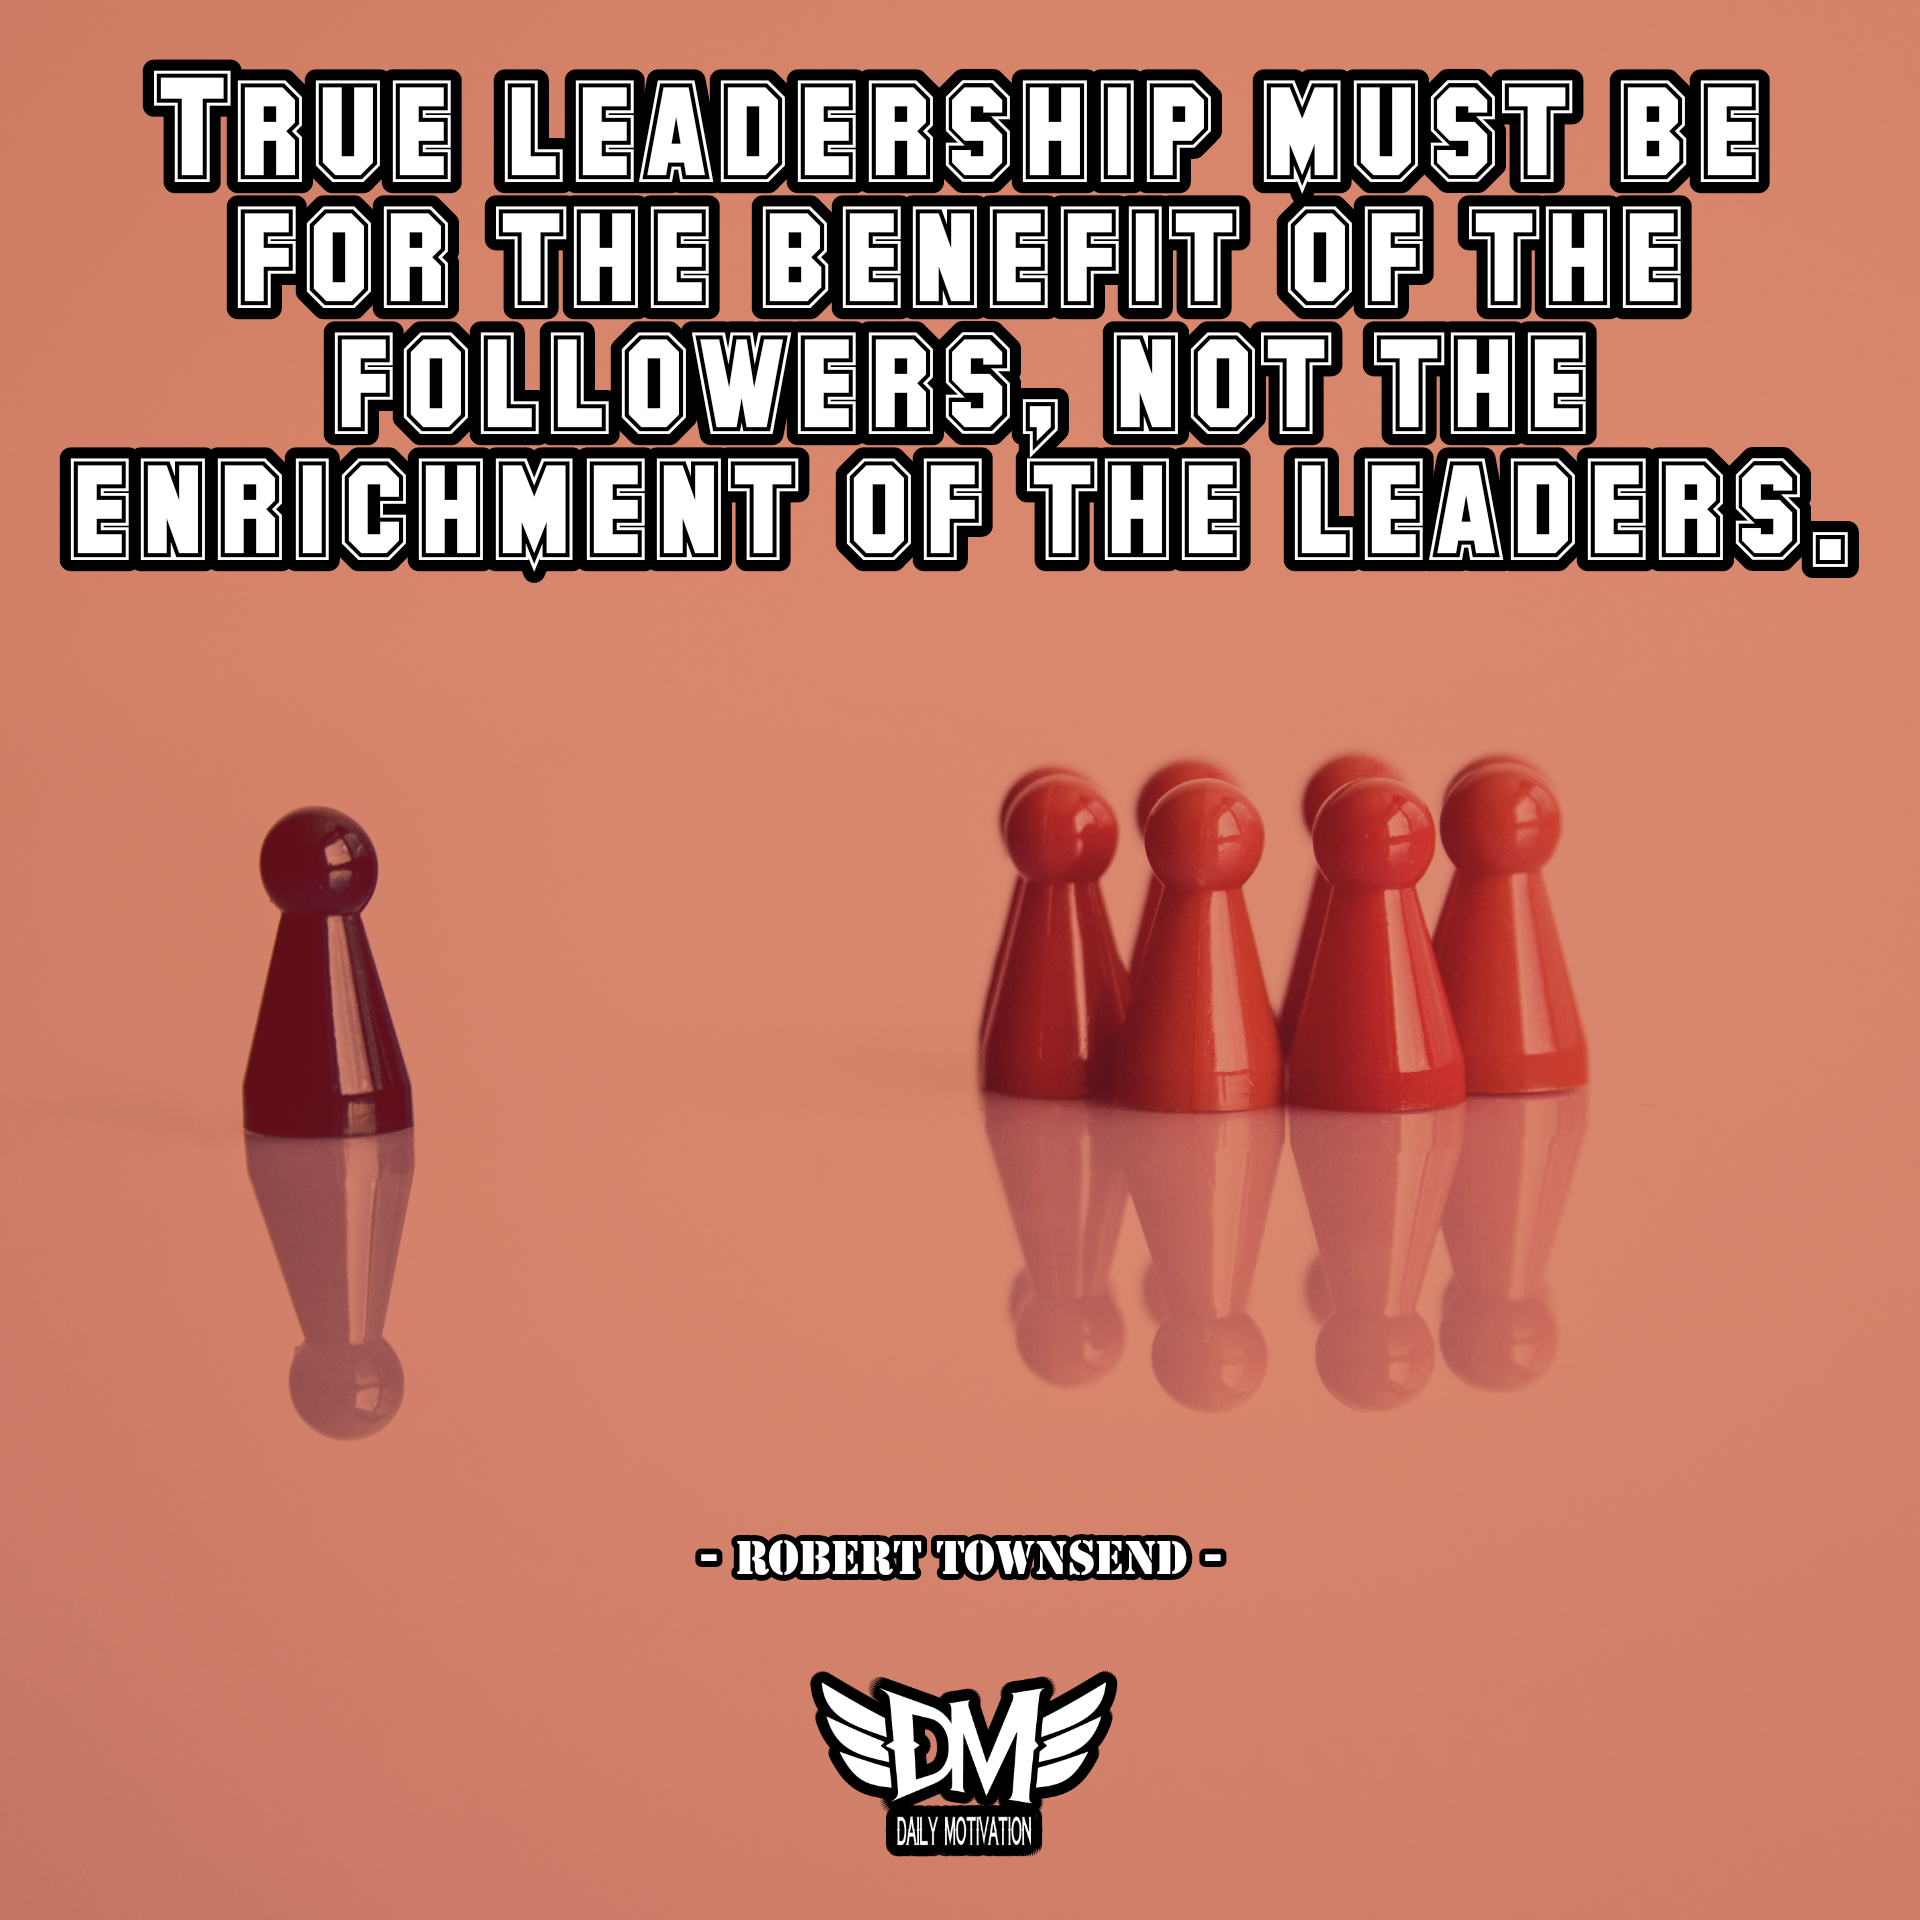 """True leadership must be for the benefit of the followers, not the enrichment of the leaders."" – Robert Townsend [1920 x 1920]"